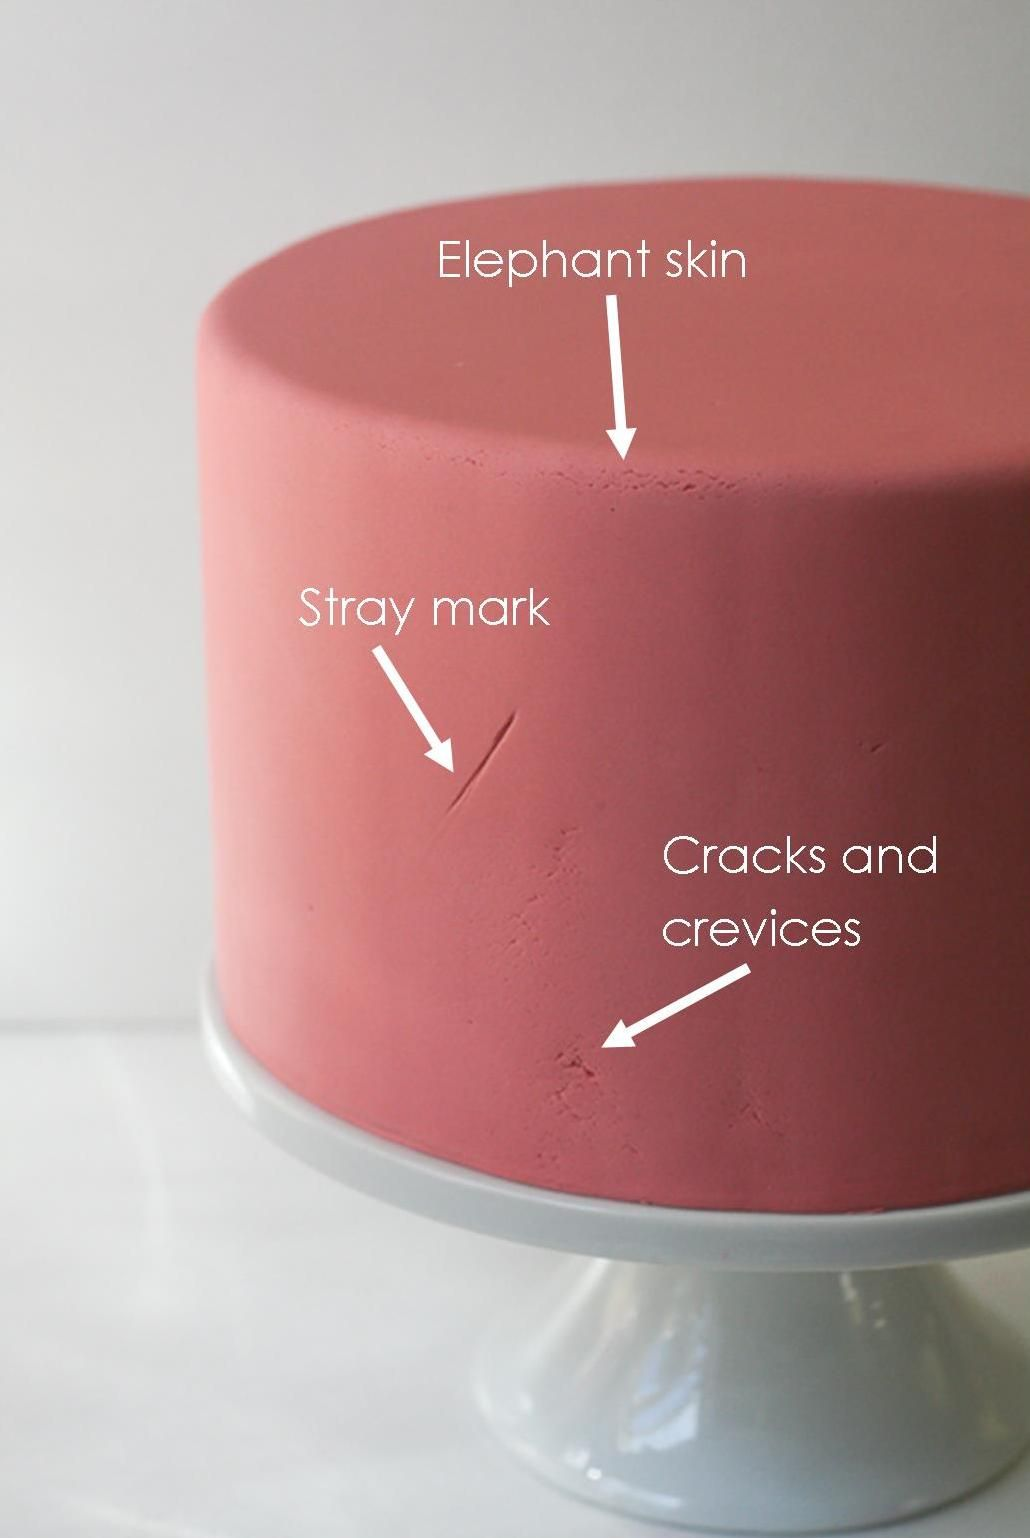 Küchendesign 2018 erica obrien problematic fondant  guides in   pinterest  cake